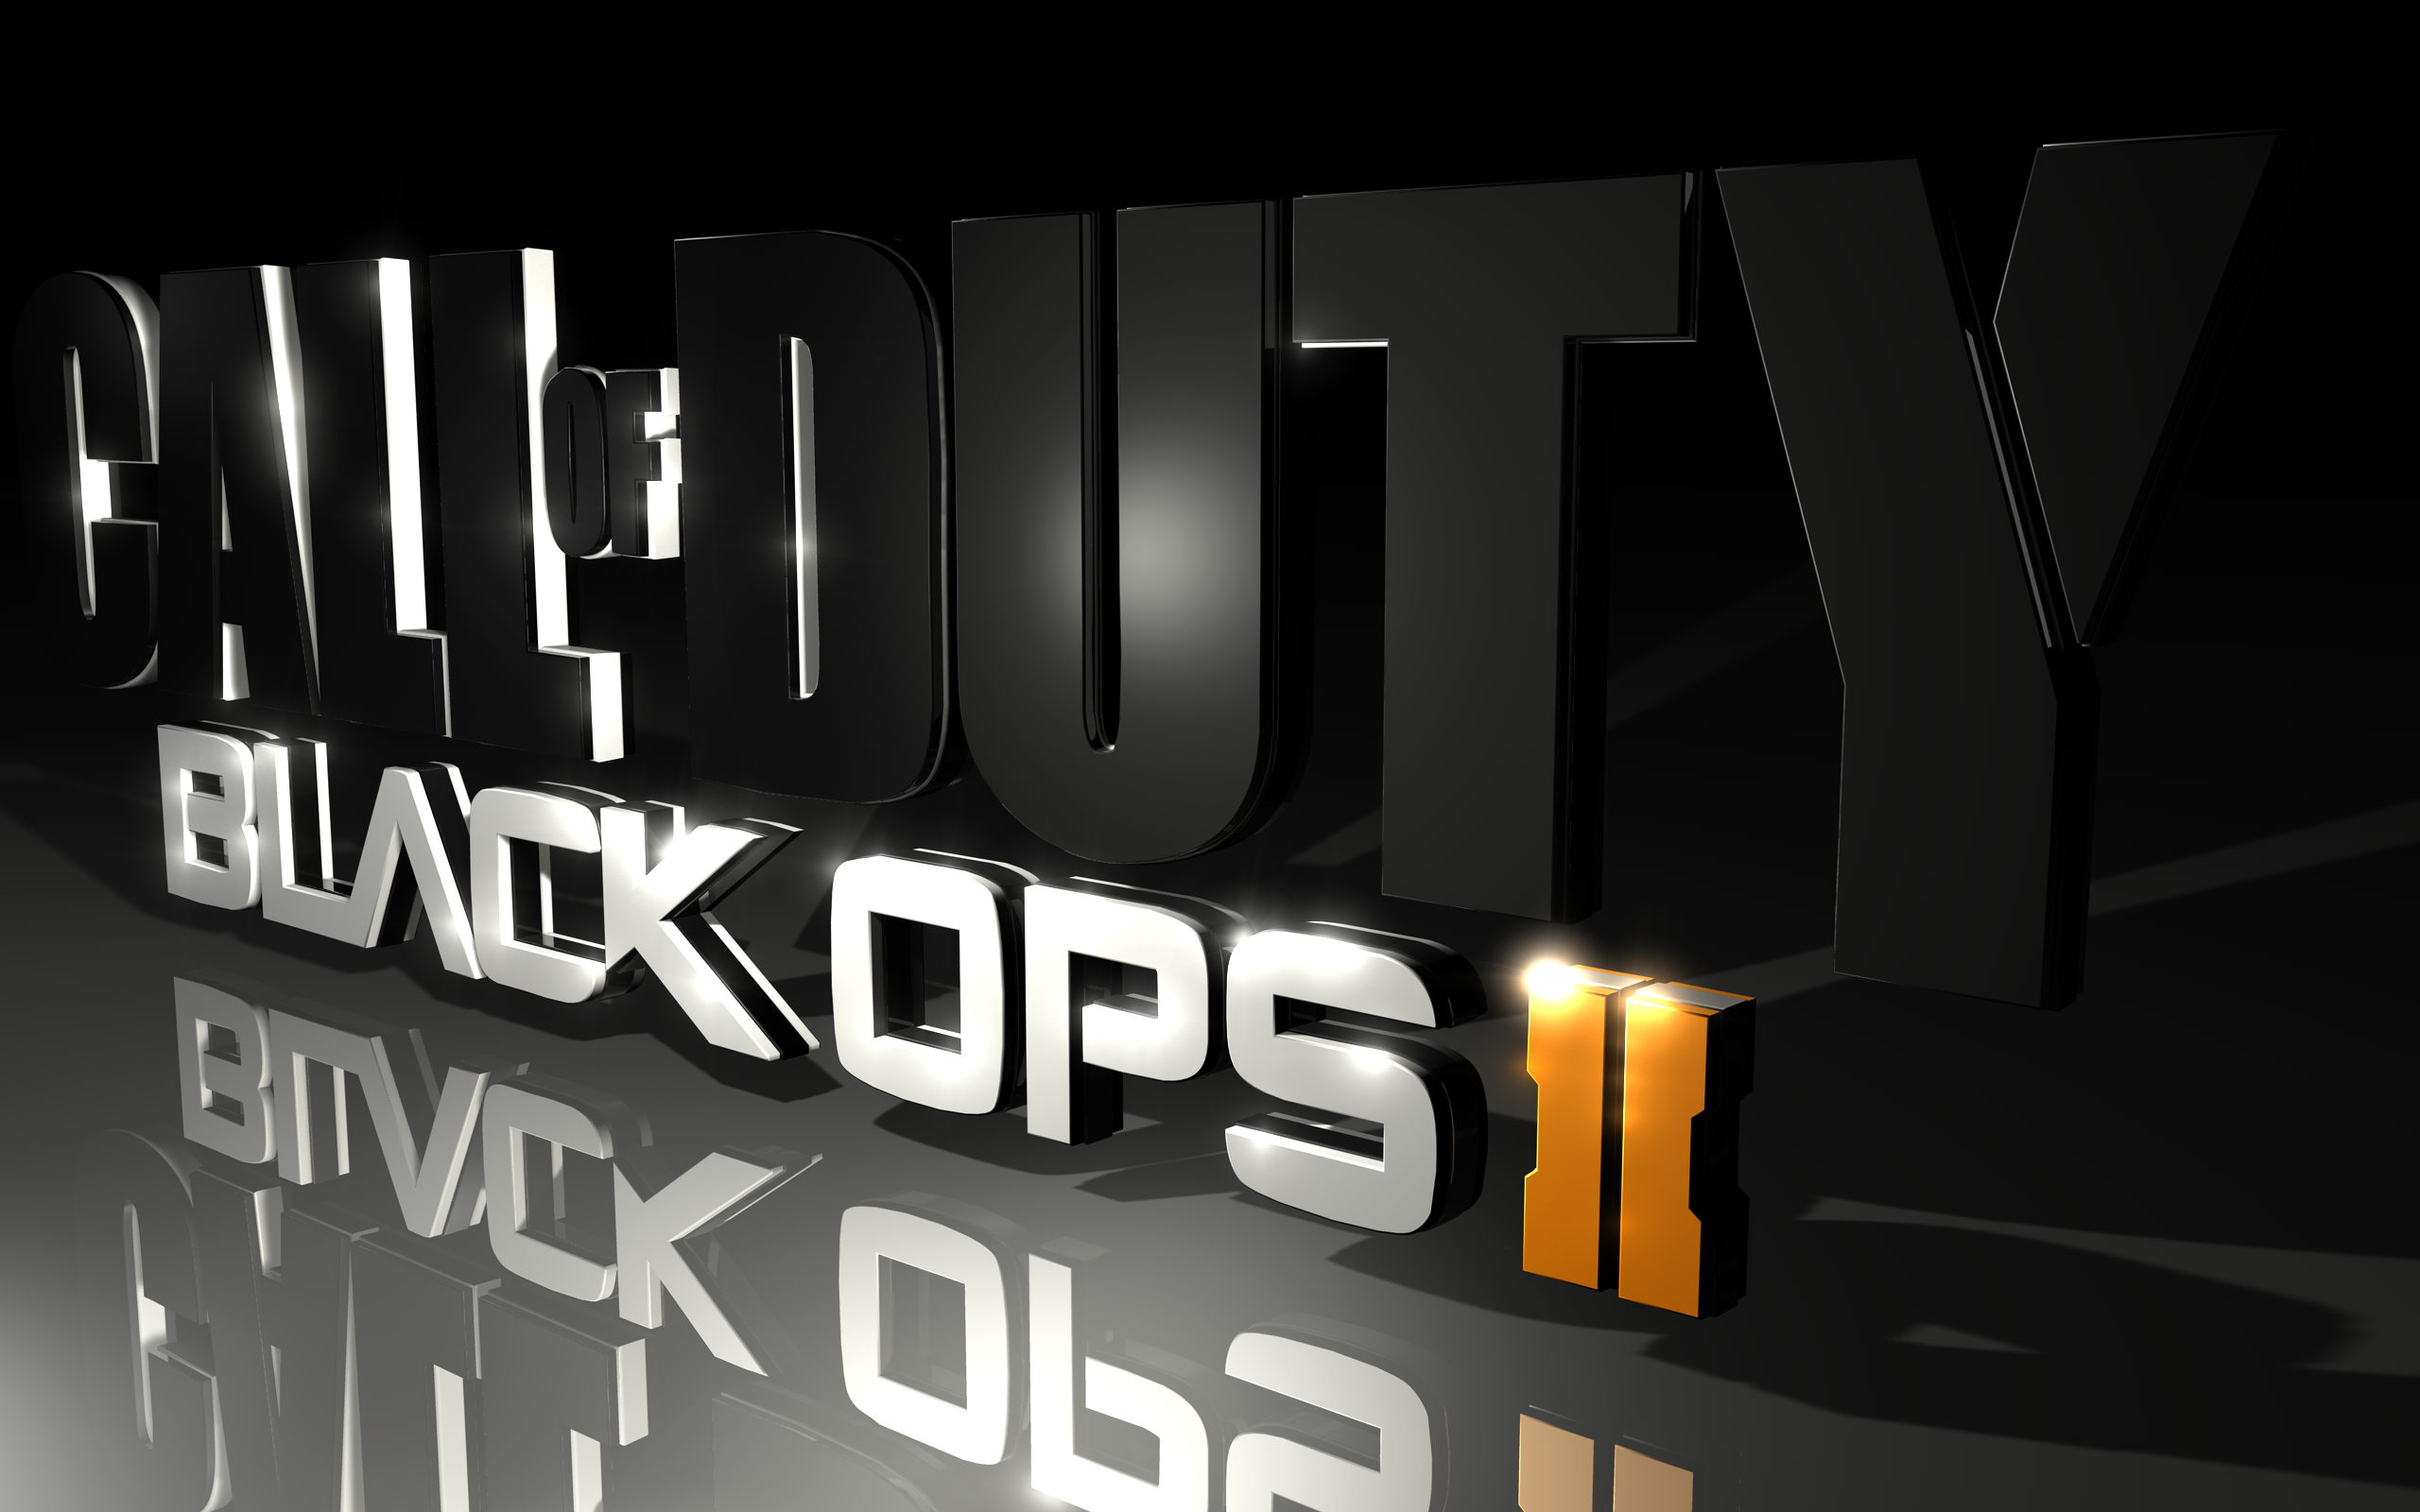 Call Of Duty Black Ops Ii Computer Wallpapers Desktop Black Ops Call Of Duty Black Logo Wallpaper Hd